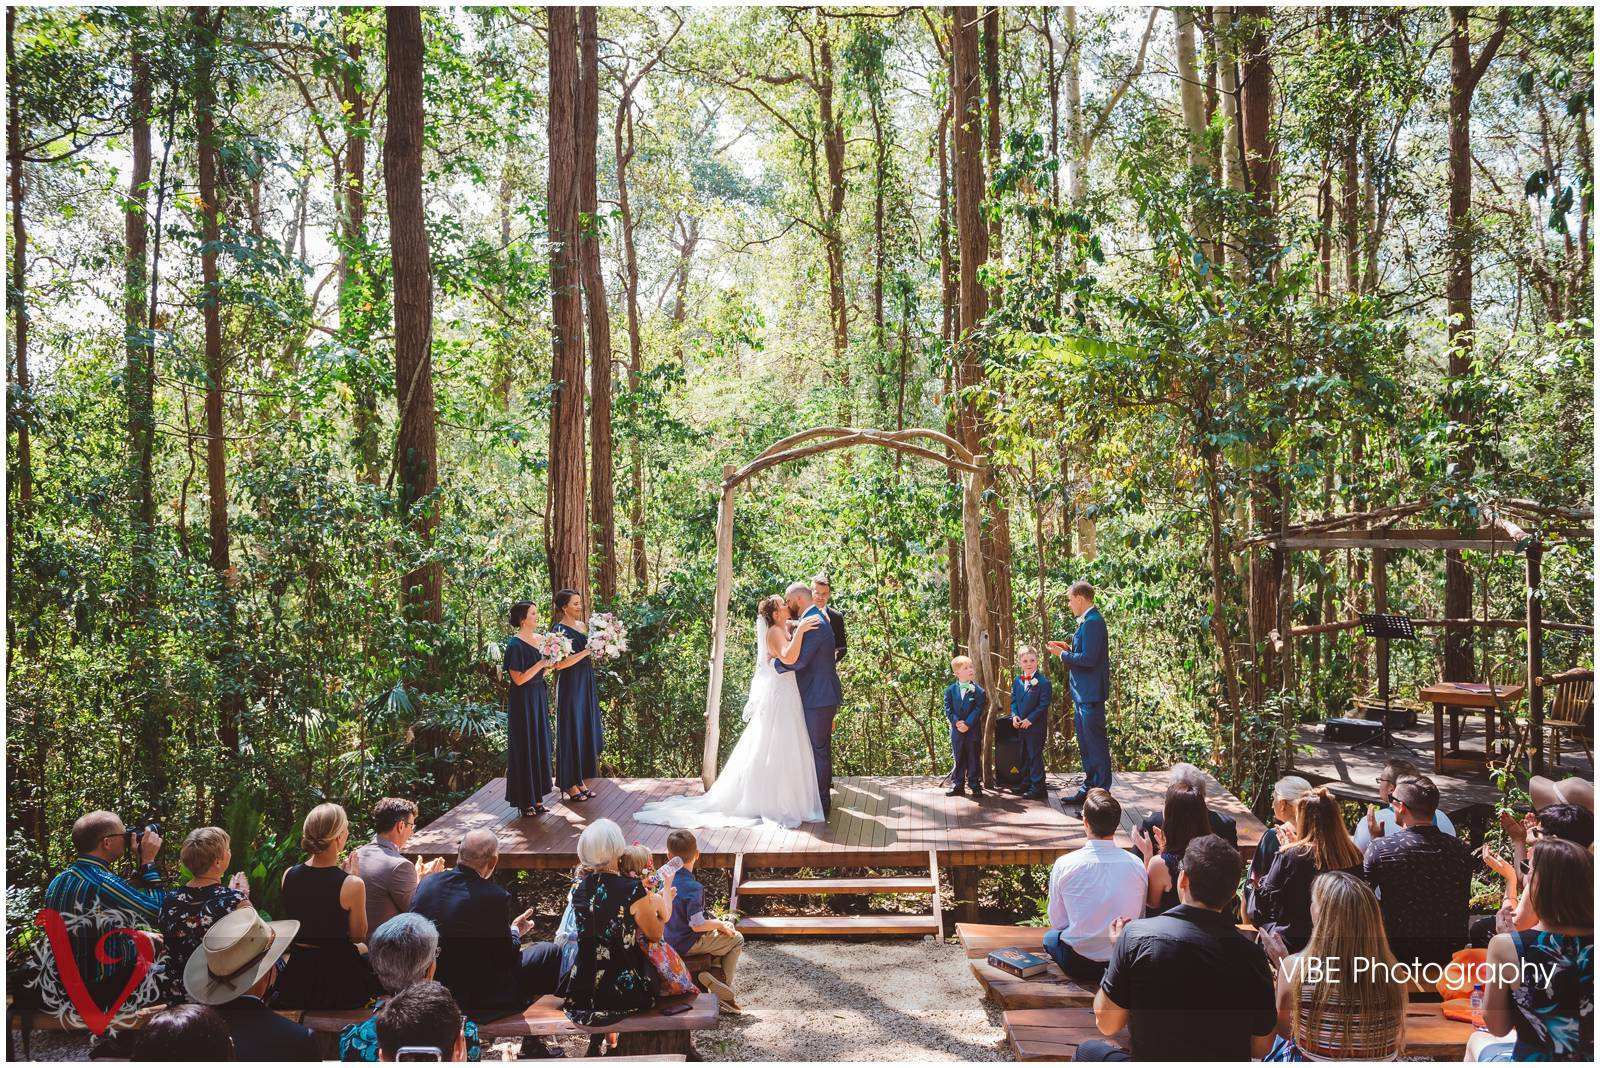 The Forest Chapel Central Coast Wedding Photography VIBE Photography 14